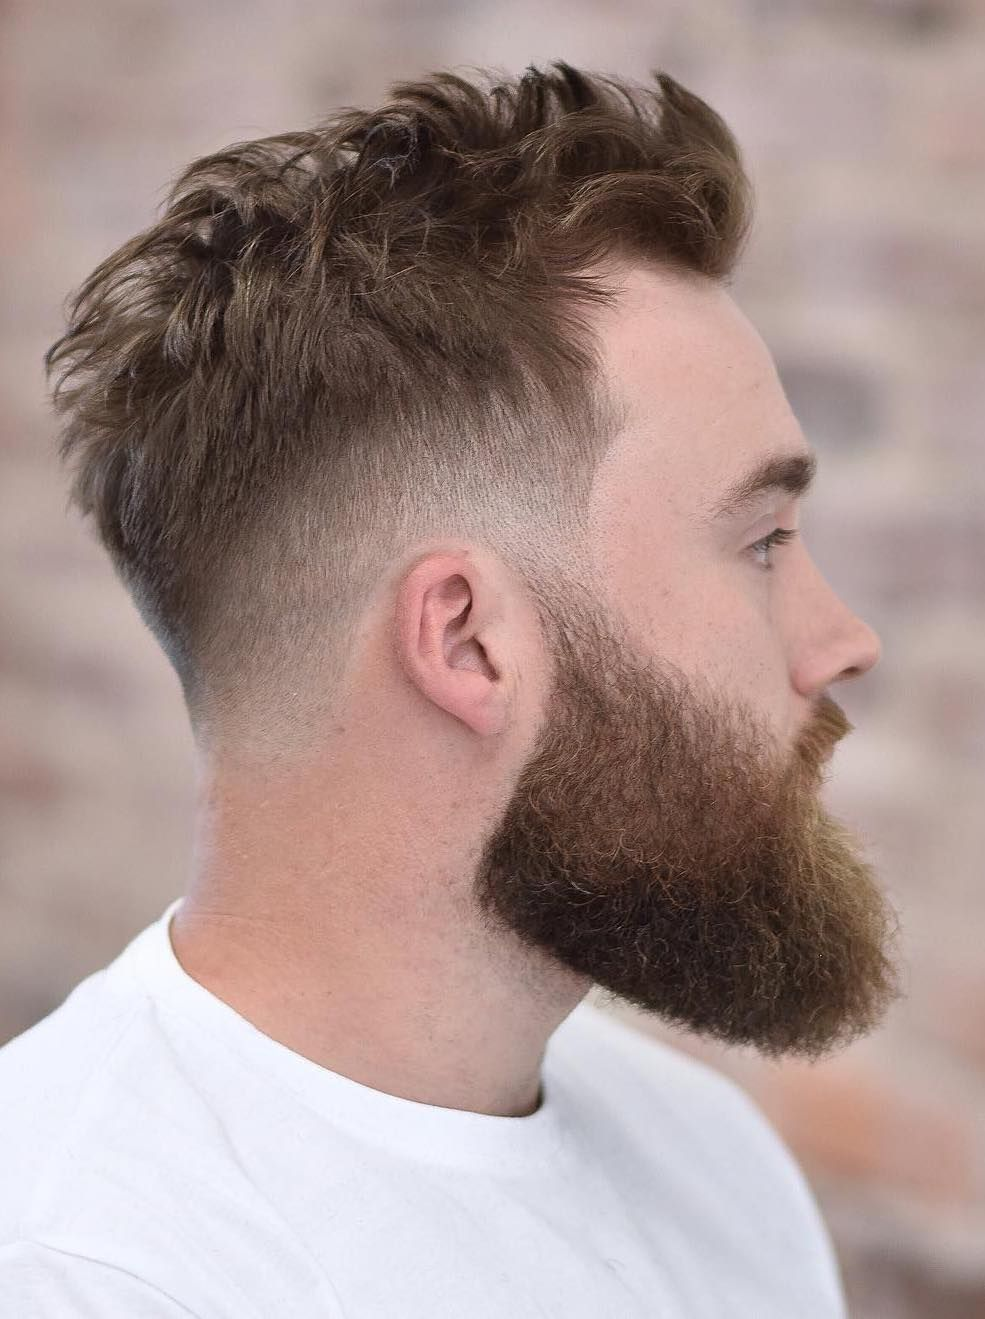 20 The Most Fashionable Mid Fade Haircuts for Men